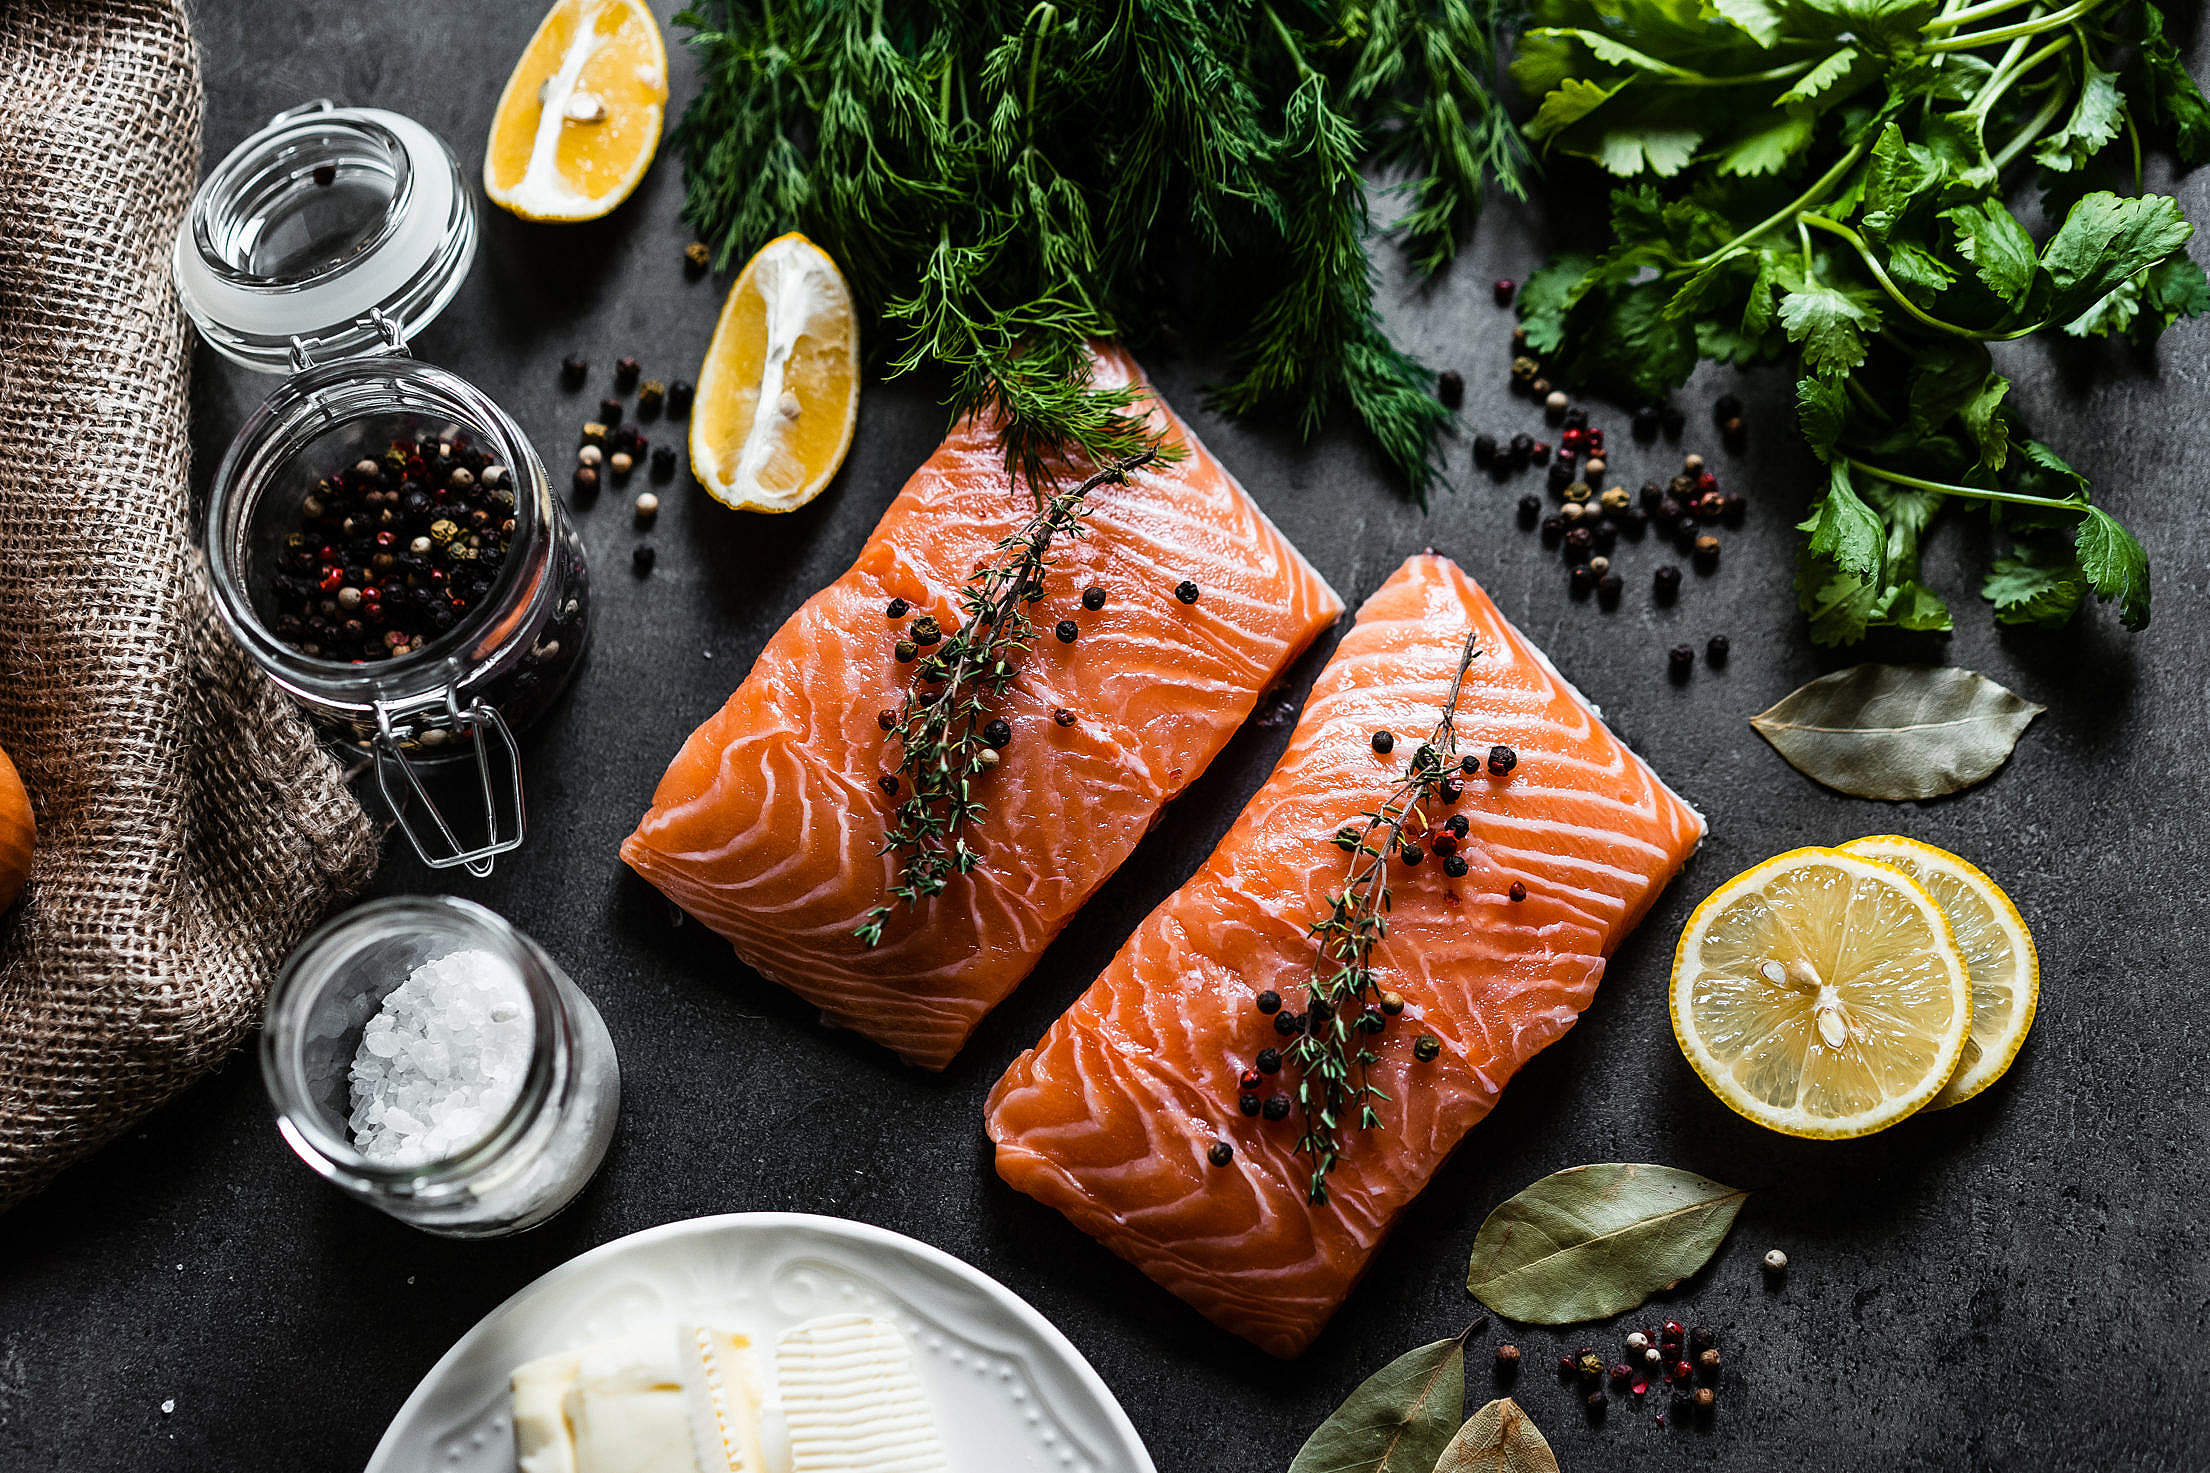 Raw Salmon Fillets and Ingredients for Cooking Free Stock Photo